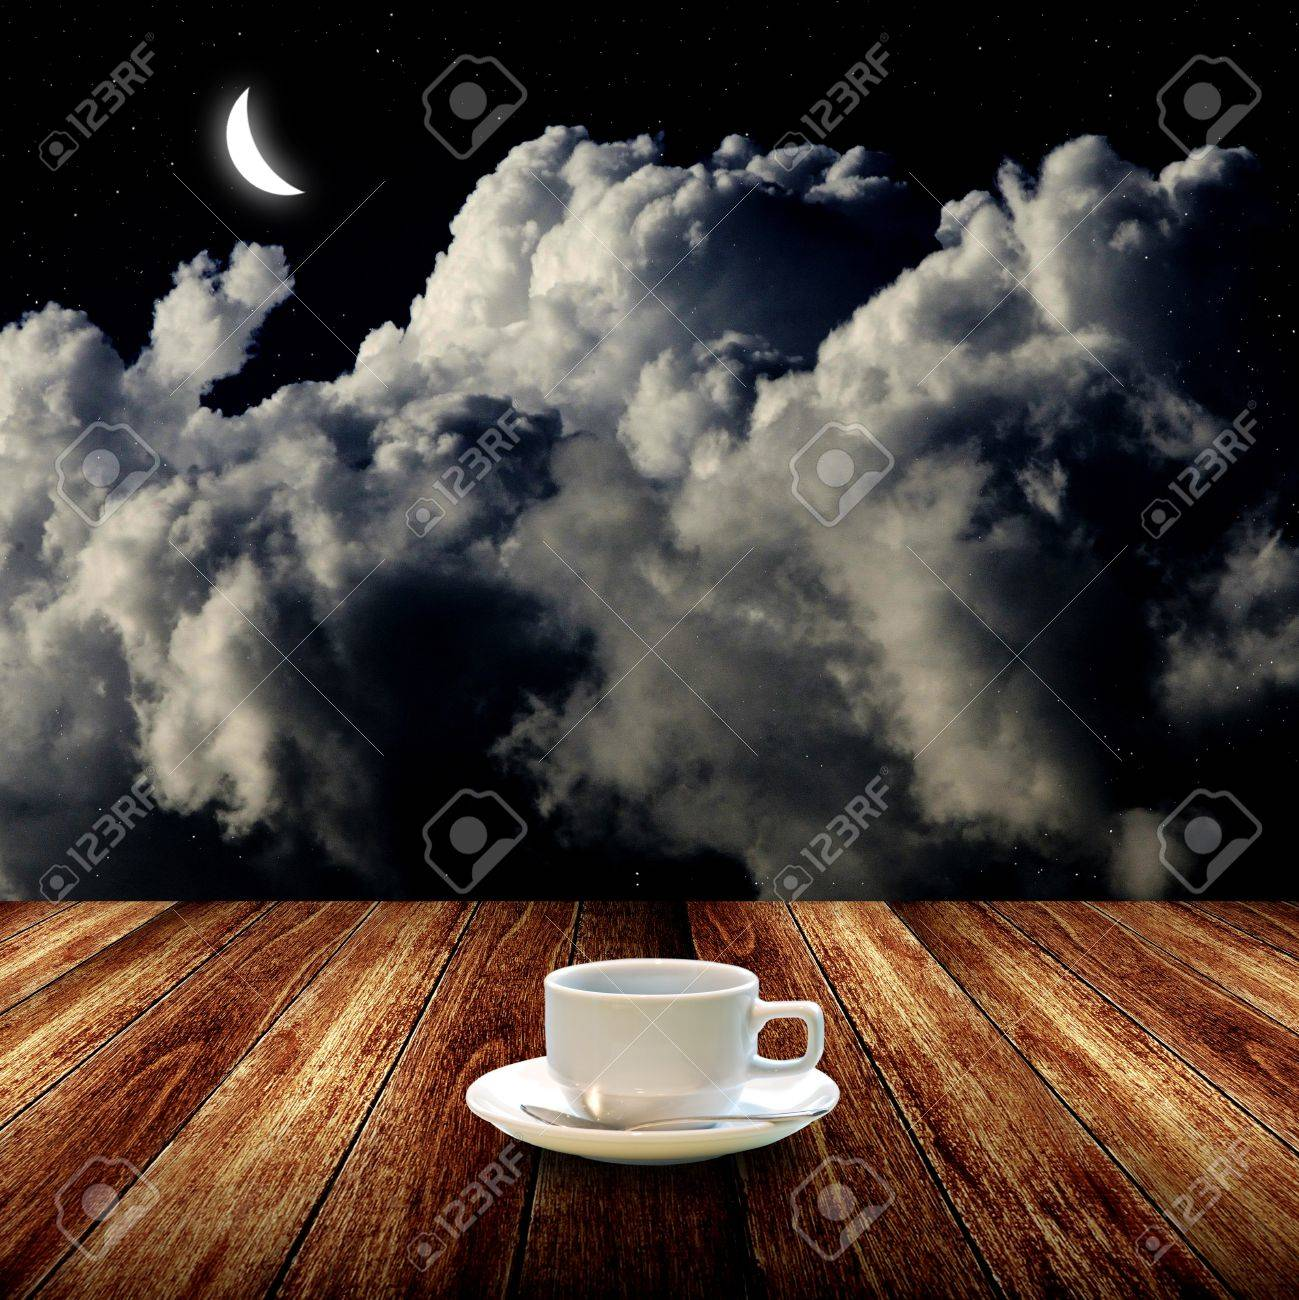 Hot coffee on wooden table with night sky Stock Photo - 14989816